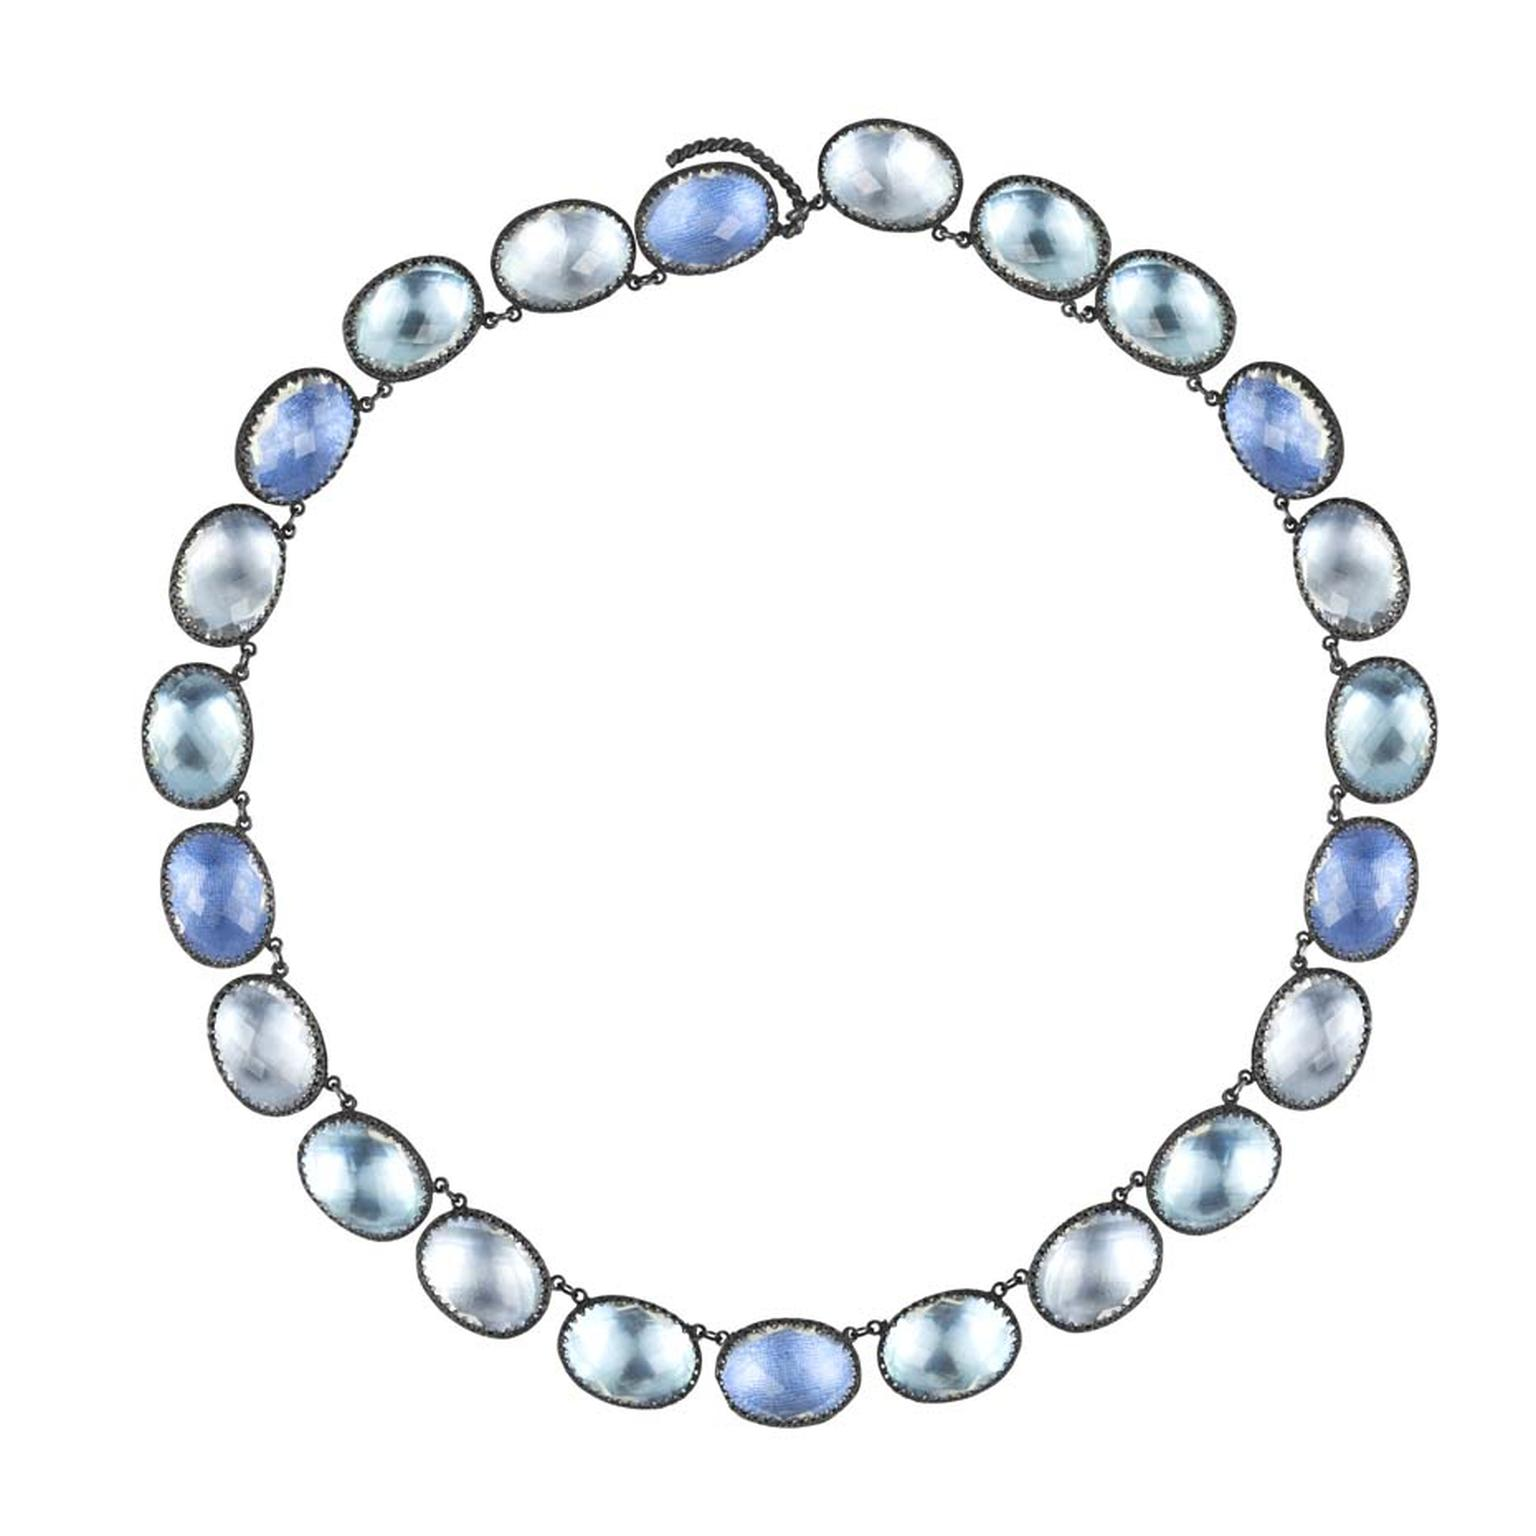 Larkspur & Hawk Lily Rivière-style white topaz necklace in oxidized silver with ice, azure and sky foils ($5,000).